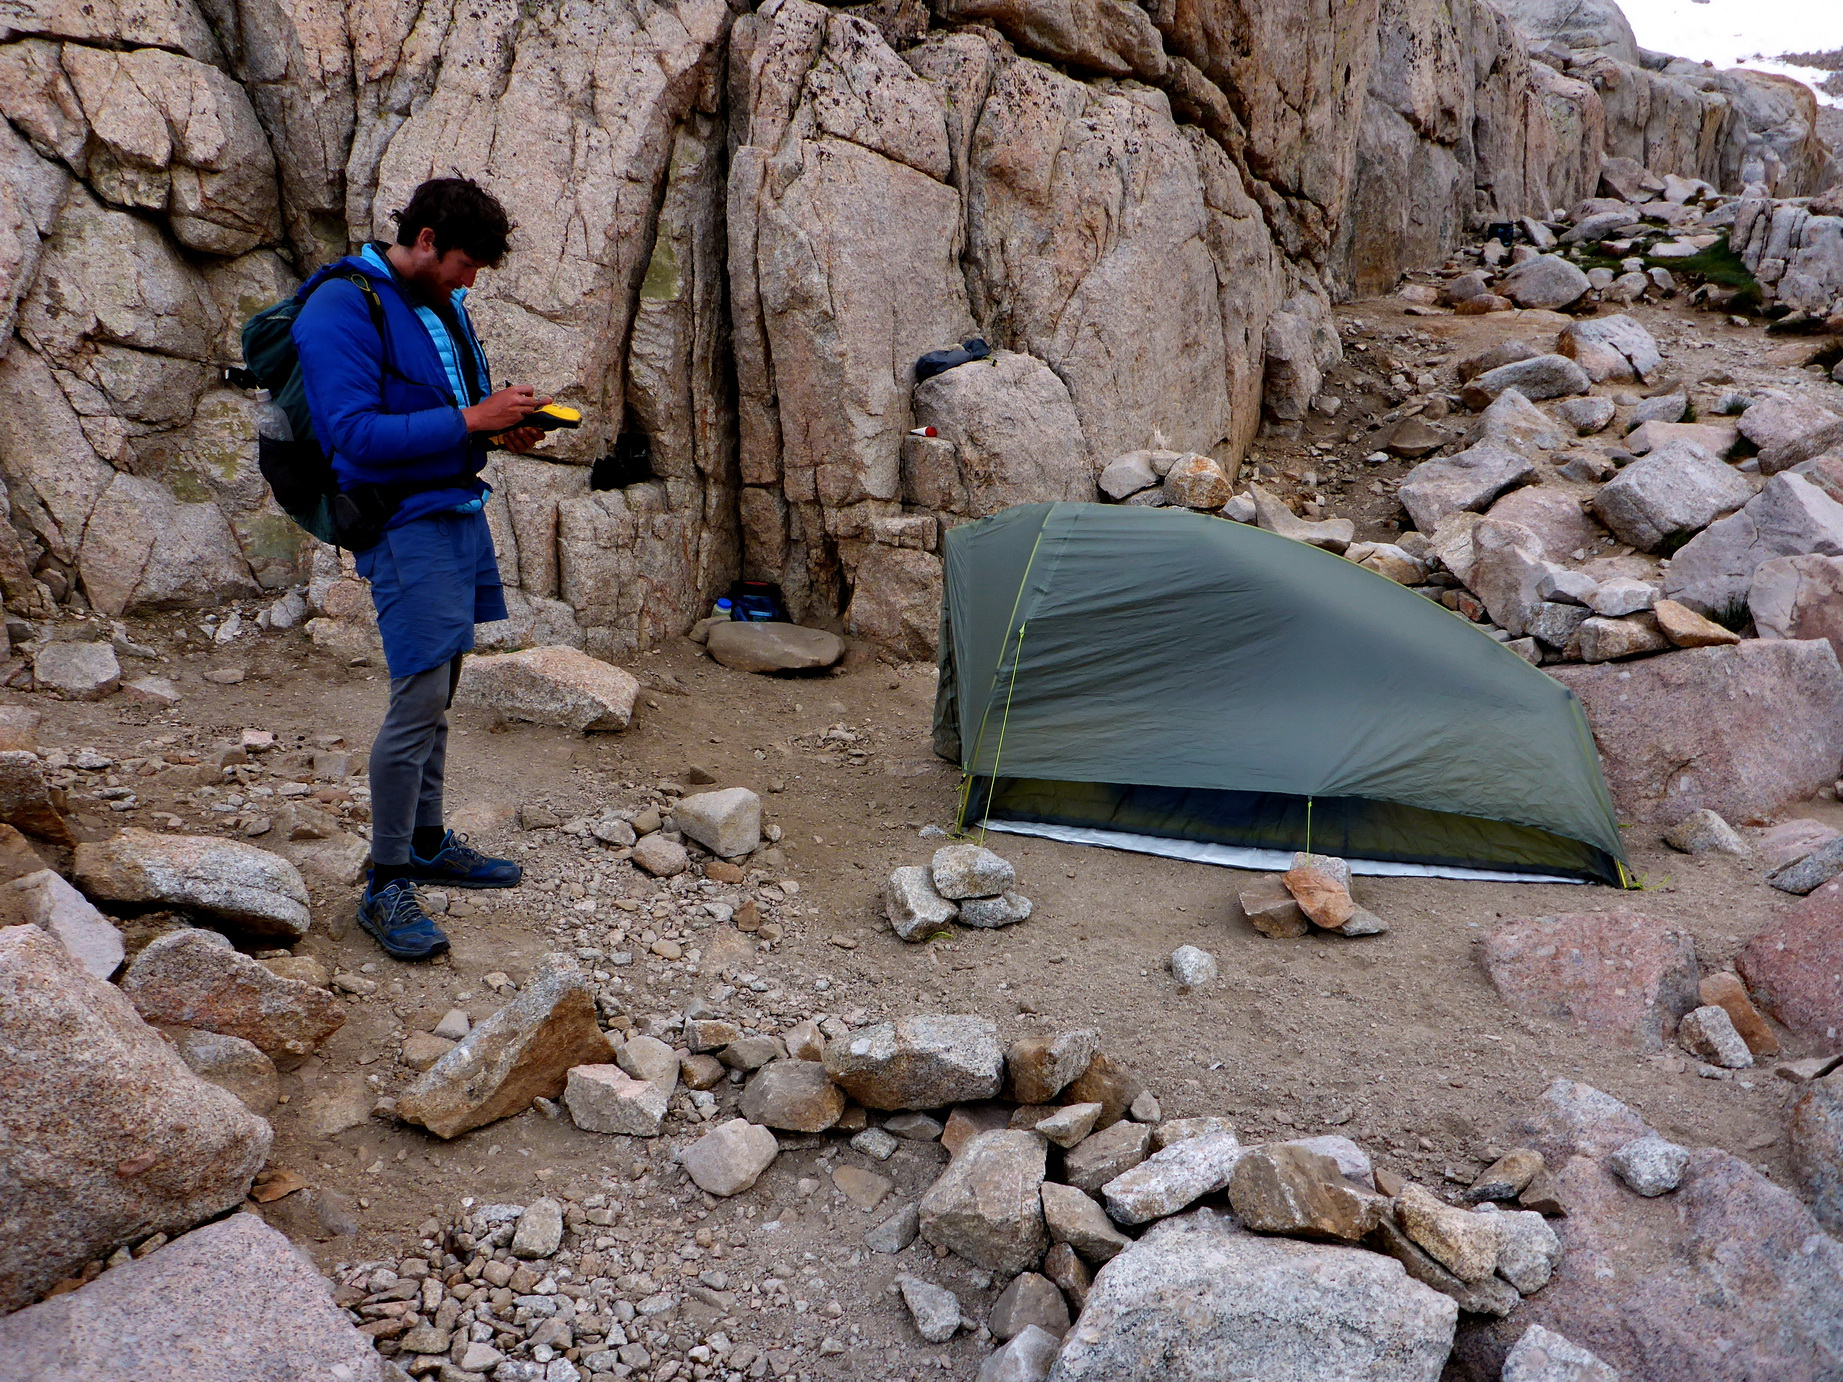 Camping near water bodies in wilderness: sustainable camping management strategies